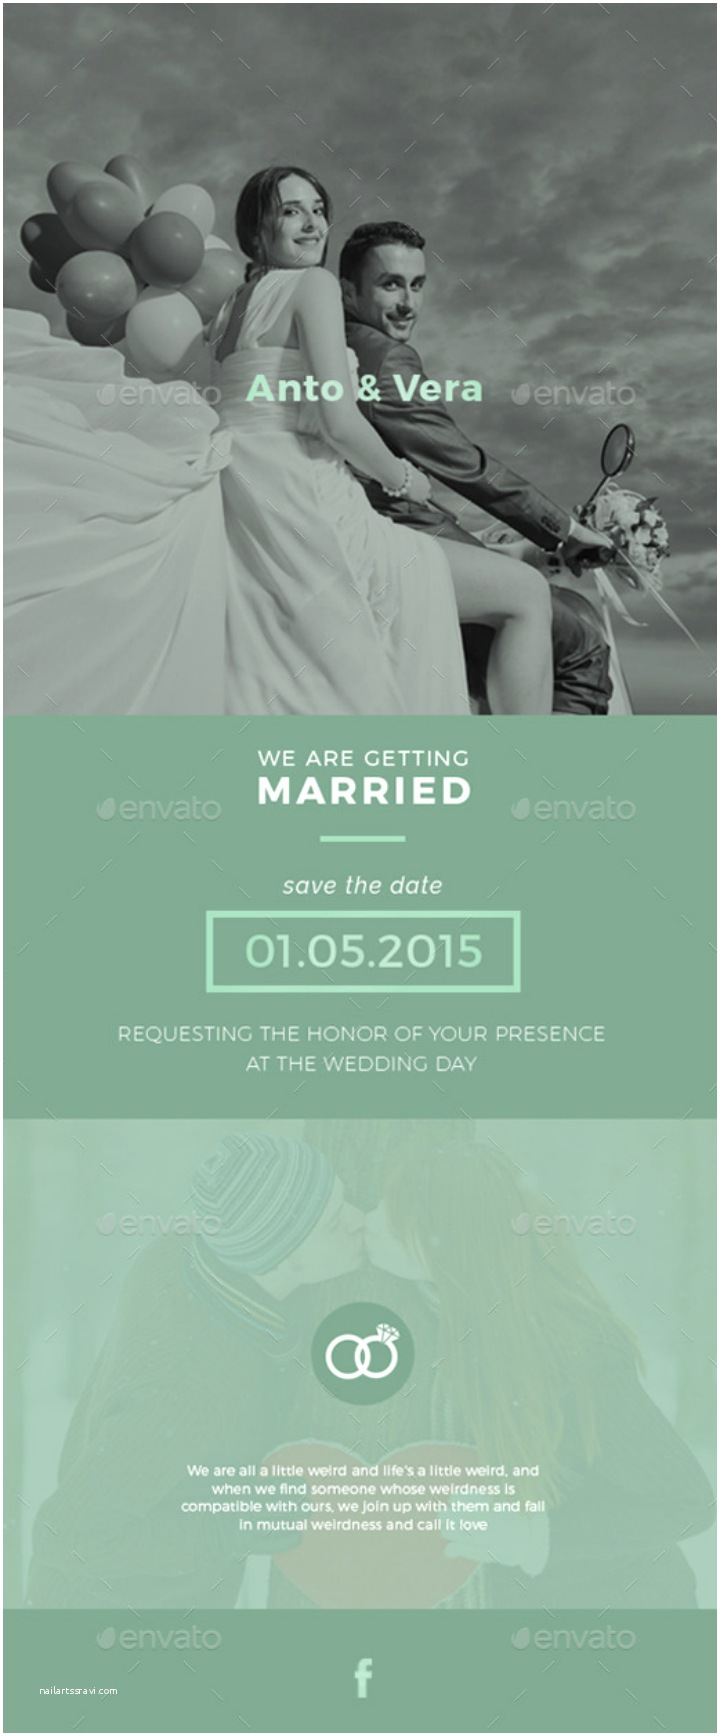 Wedding Invitation Email Template 14 Wedding Email Designs & Templates Psd Ai